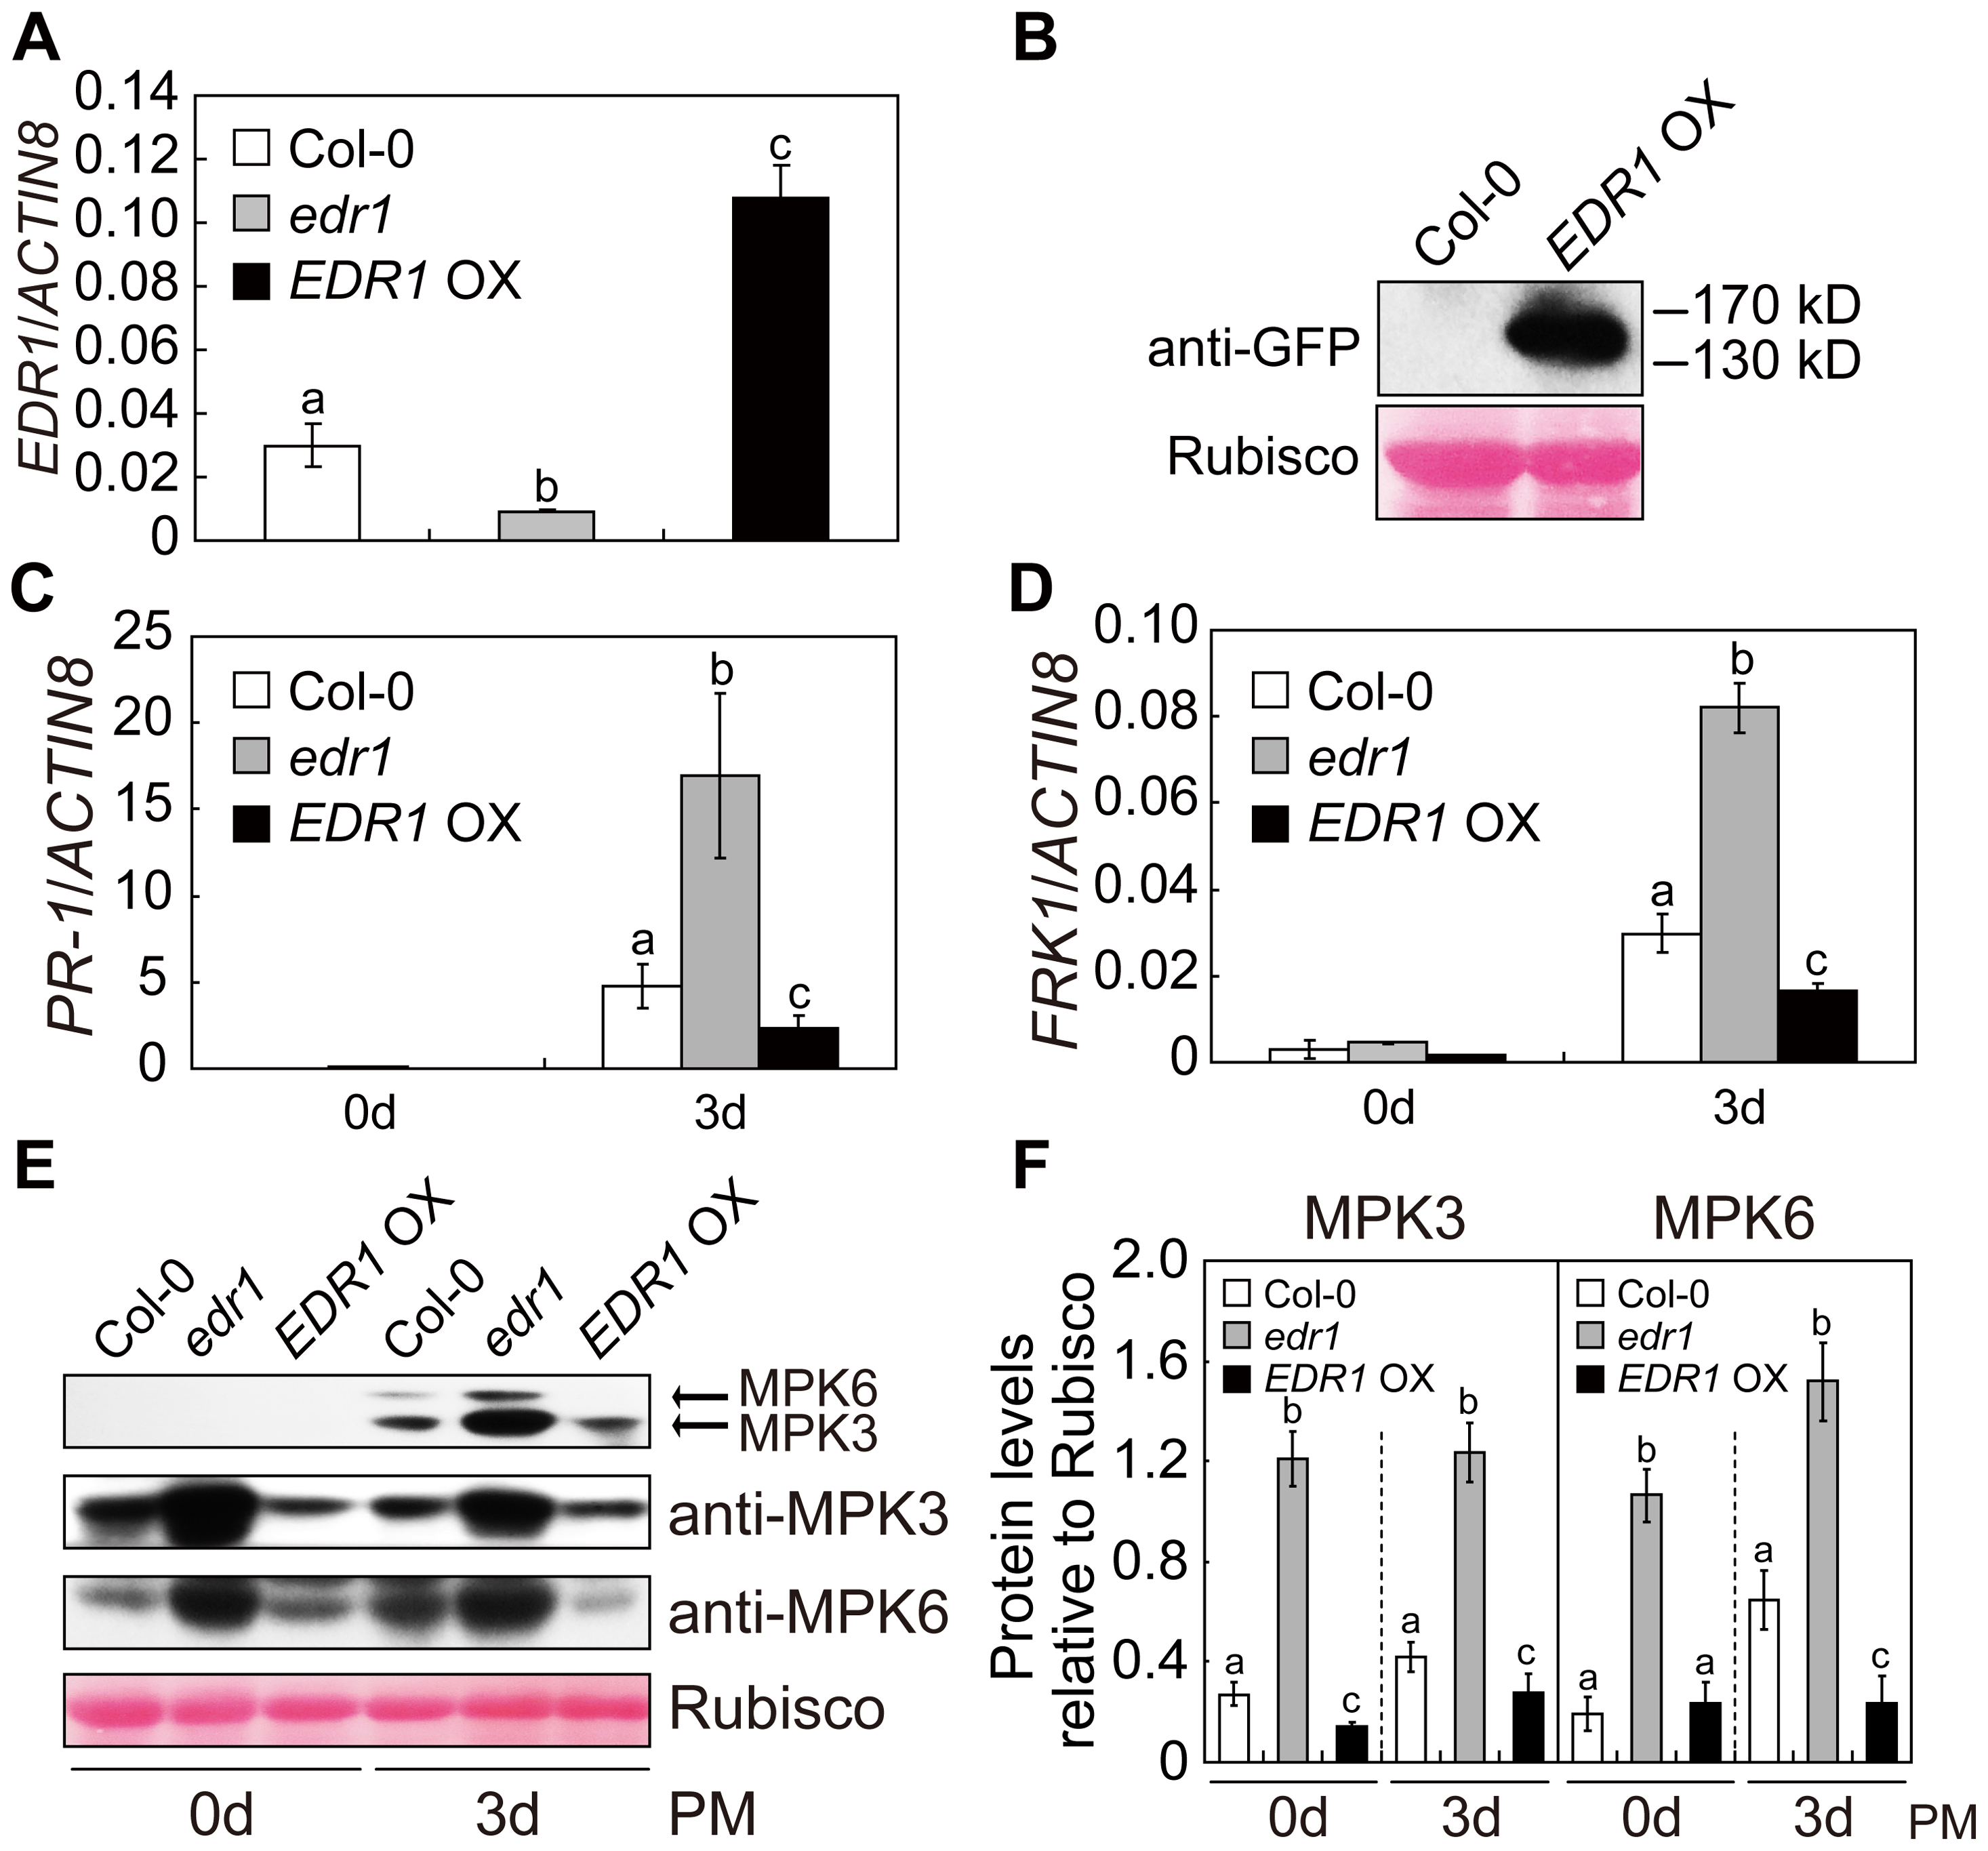 Over-expression of <i>EDR1</i> reduced the kinase activity and protein levels of MPK3 and MPK6.